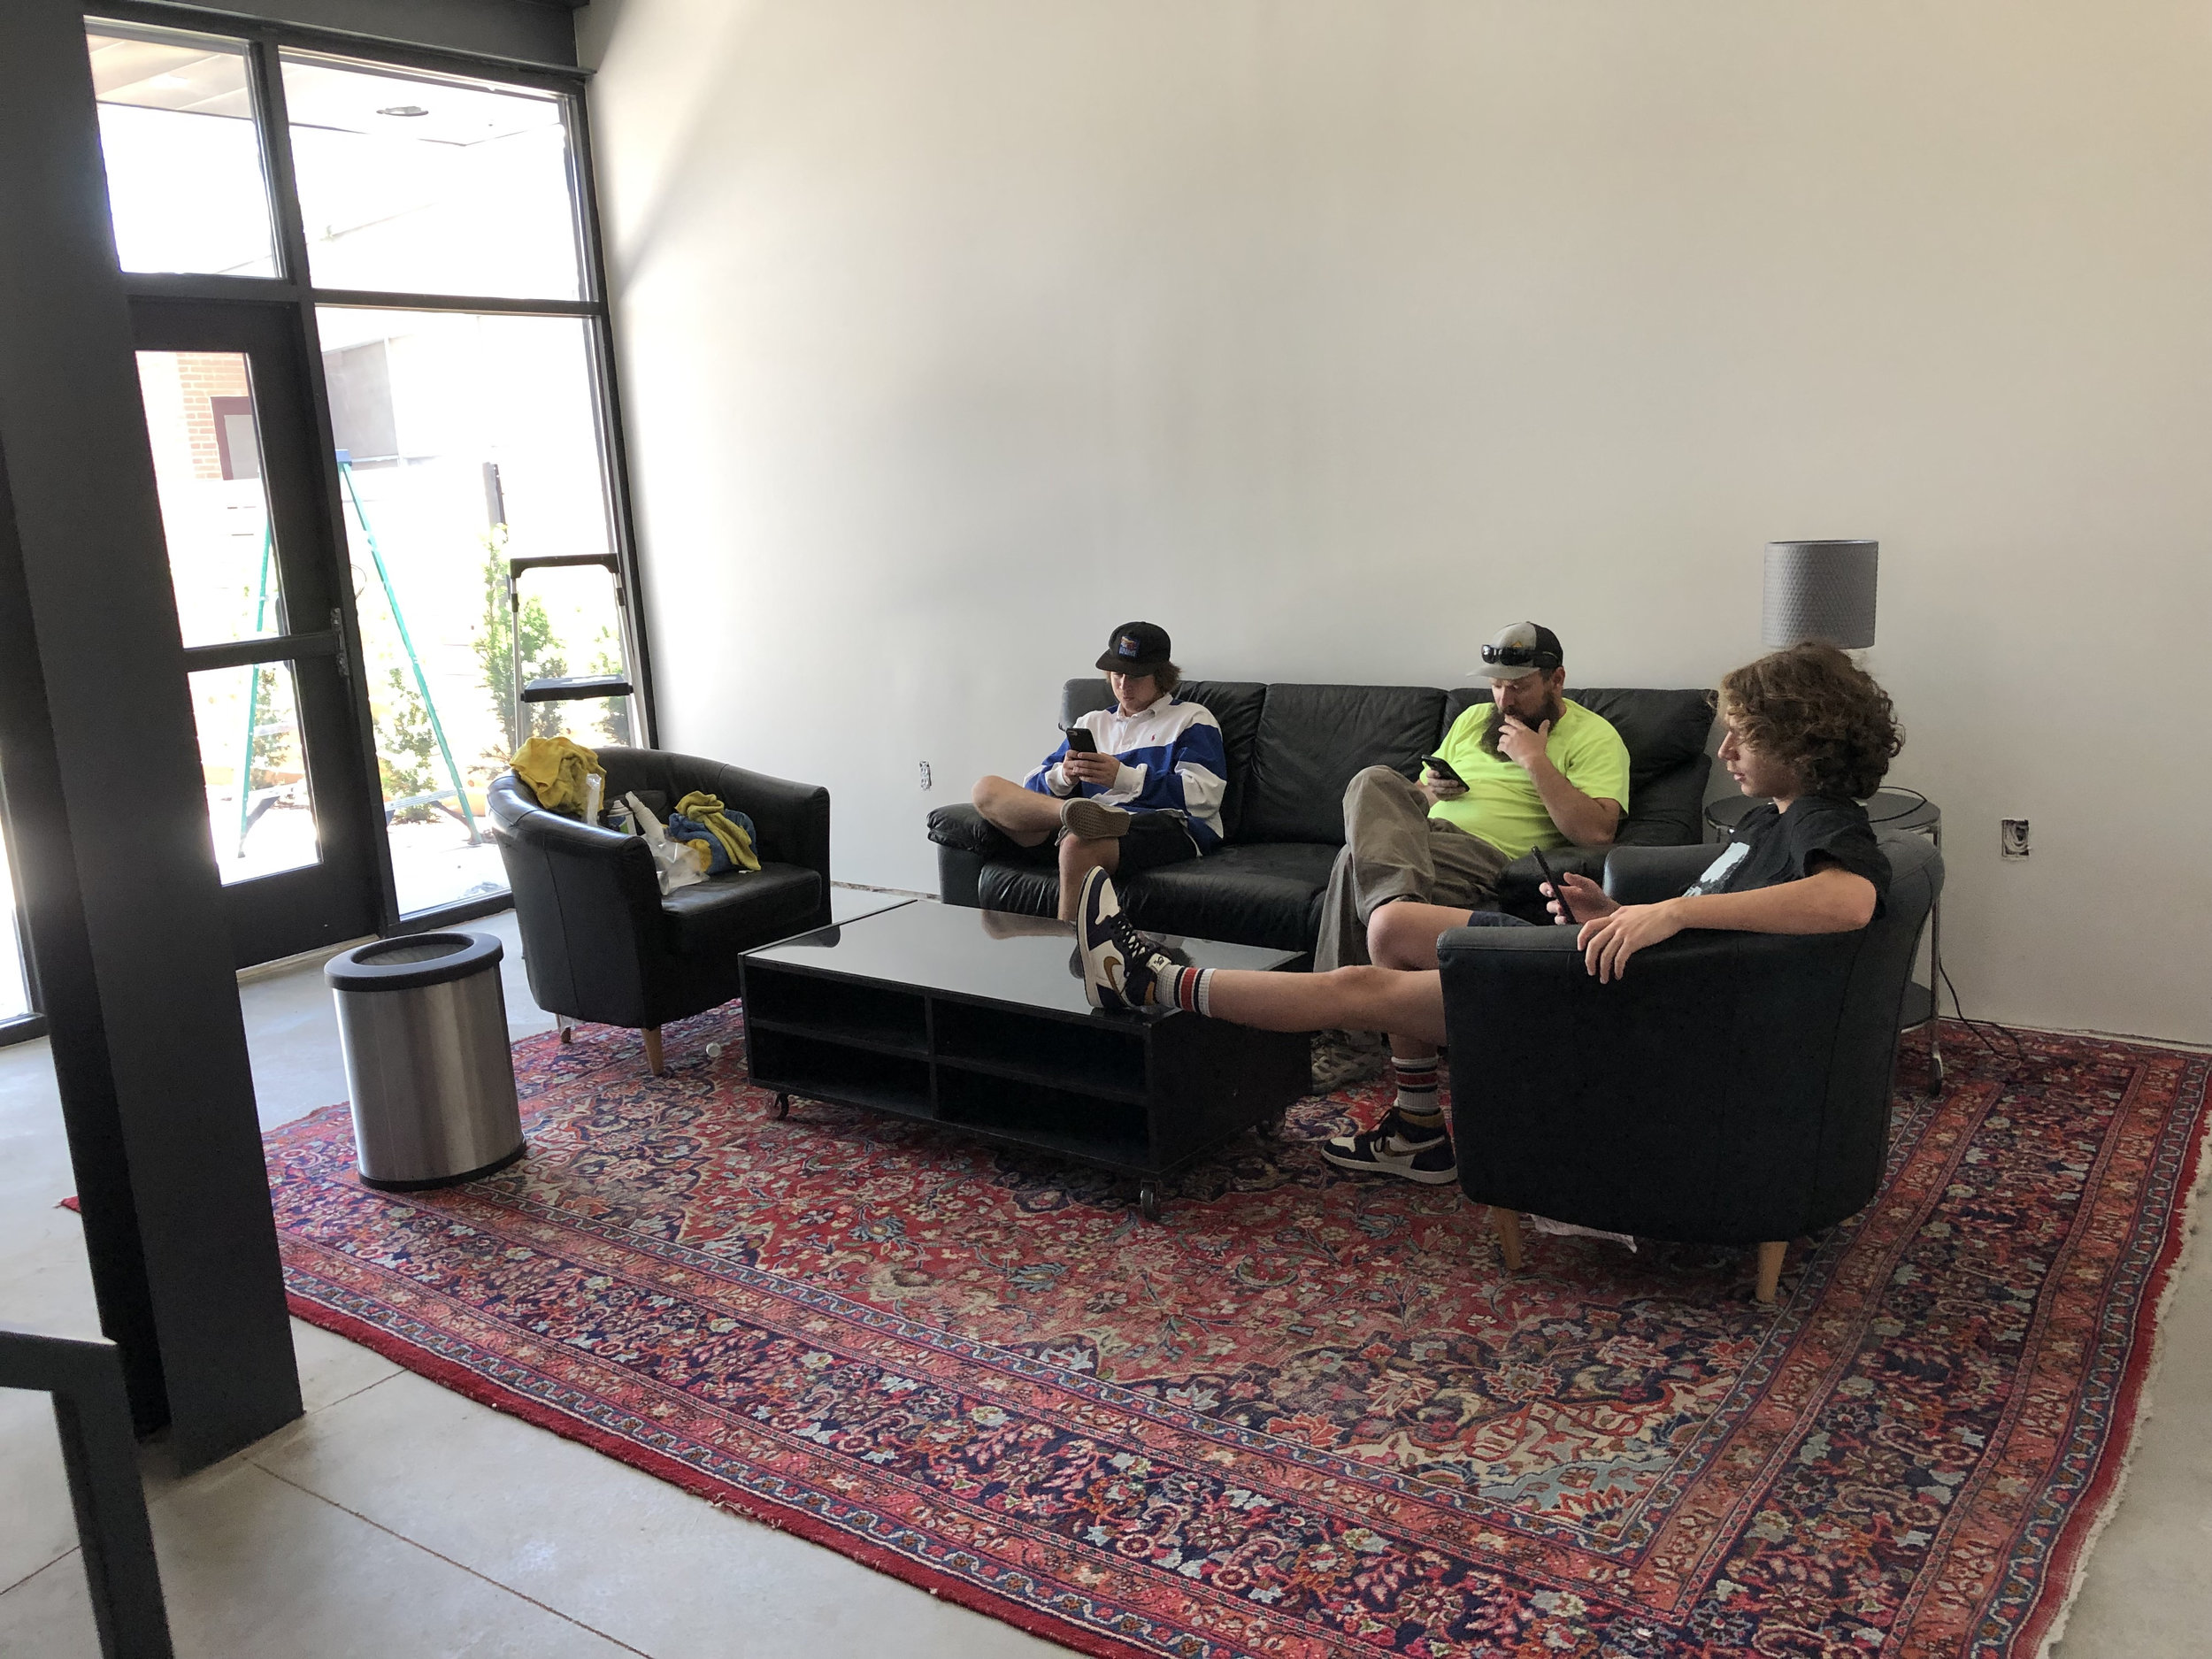 We had an unusual session this week which required more lounge space than is available in the house, so we did some serious cleaning in the new lobby and brought in some old furniture.